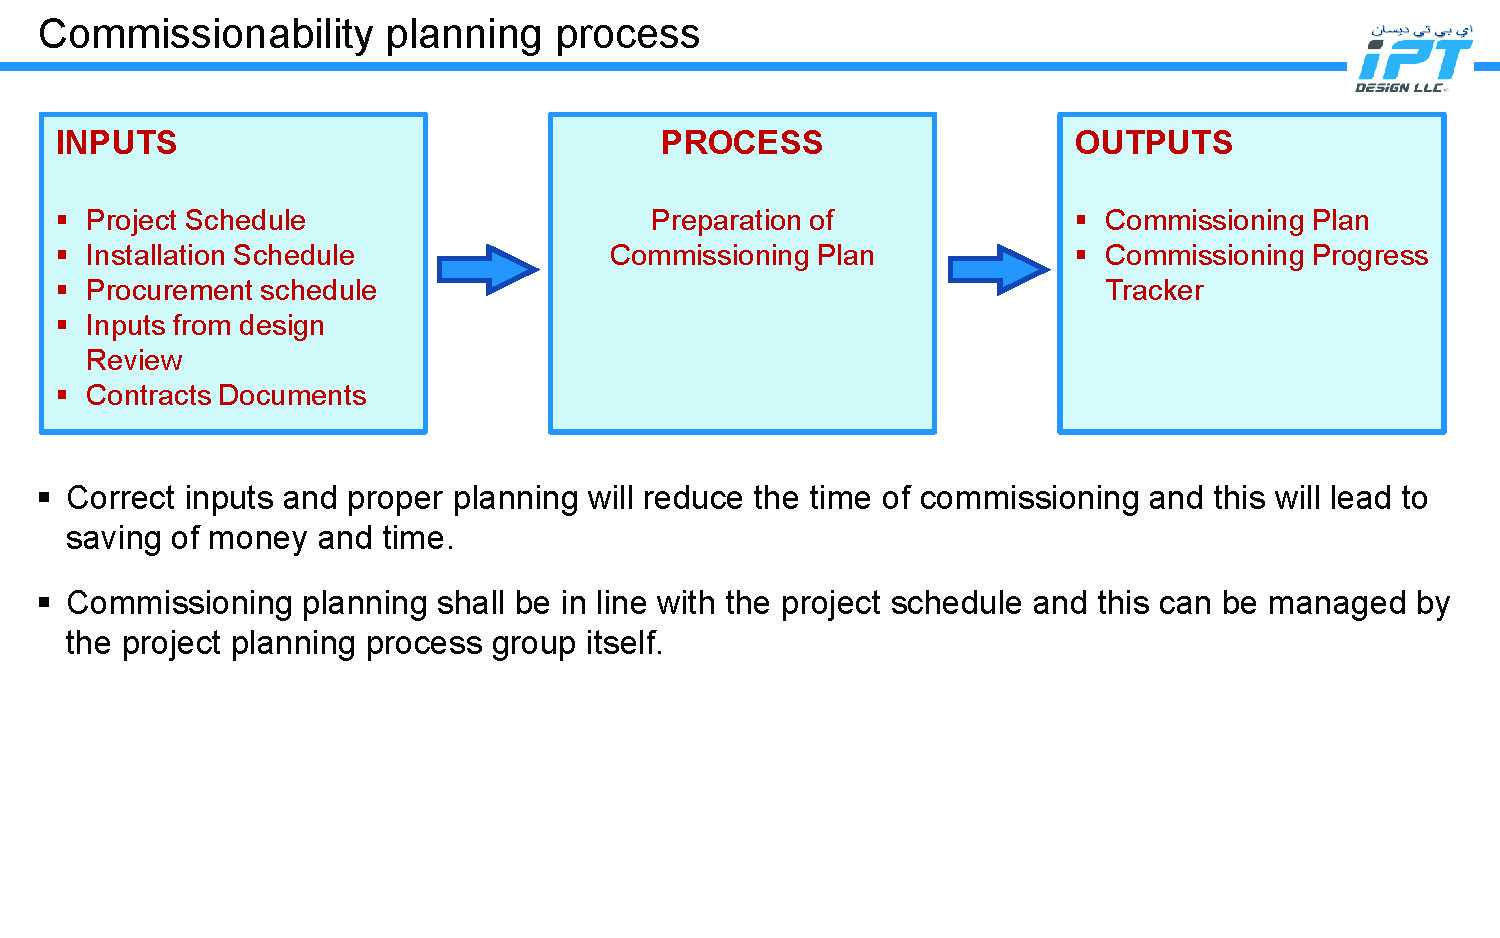 IPT Design LLC - Commissioning Management Process_Page_06.jpg